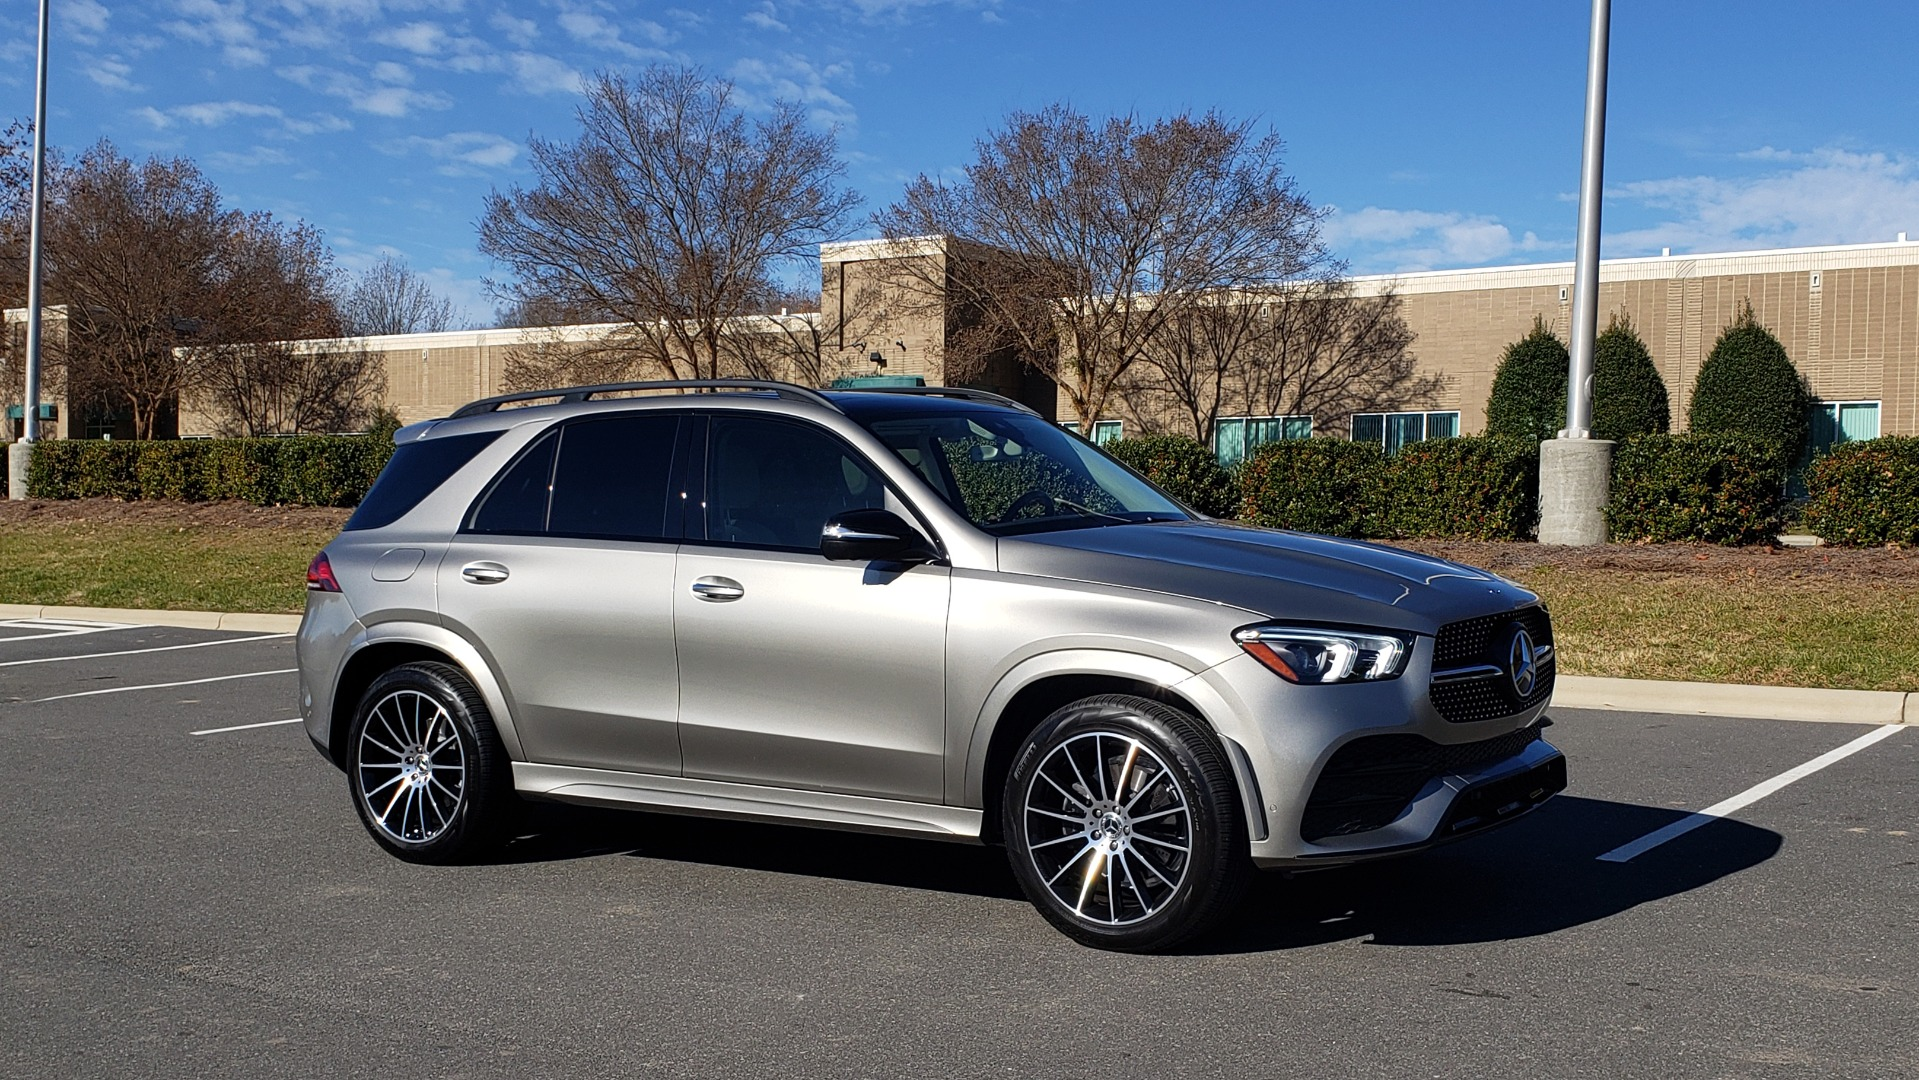 Used 2020 Mercedes-Benz GLE 350 PREMIUM / NAV / PARK ASST / NIGHT PKG / AMG LINE EXT / REARVIEW for sale Sold at Formula Imports in Charlotte NC 28227 8